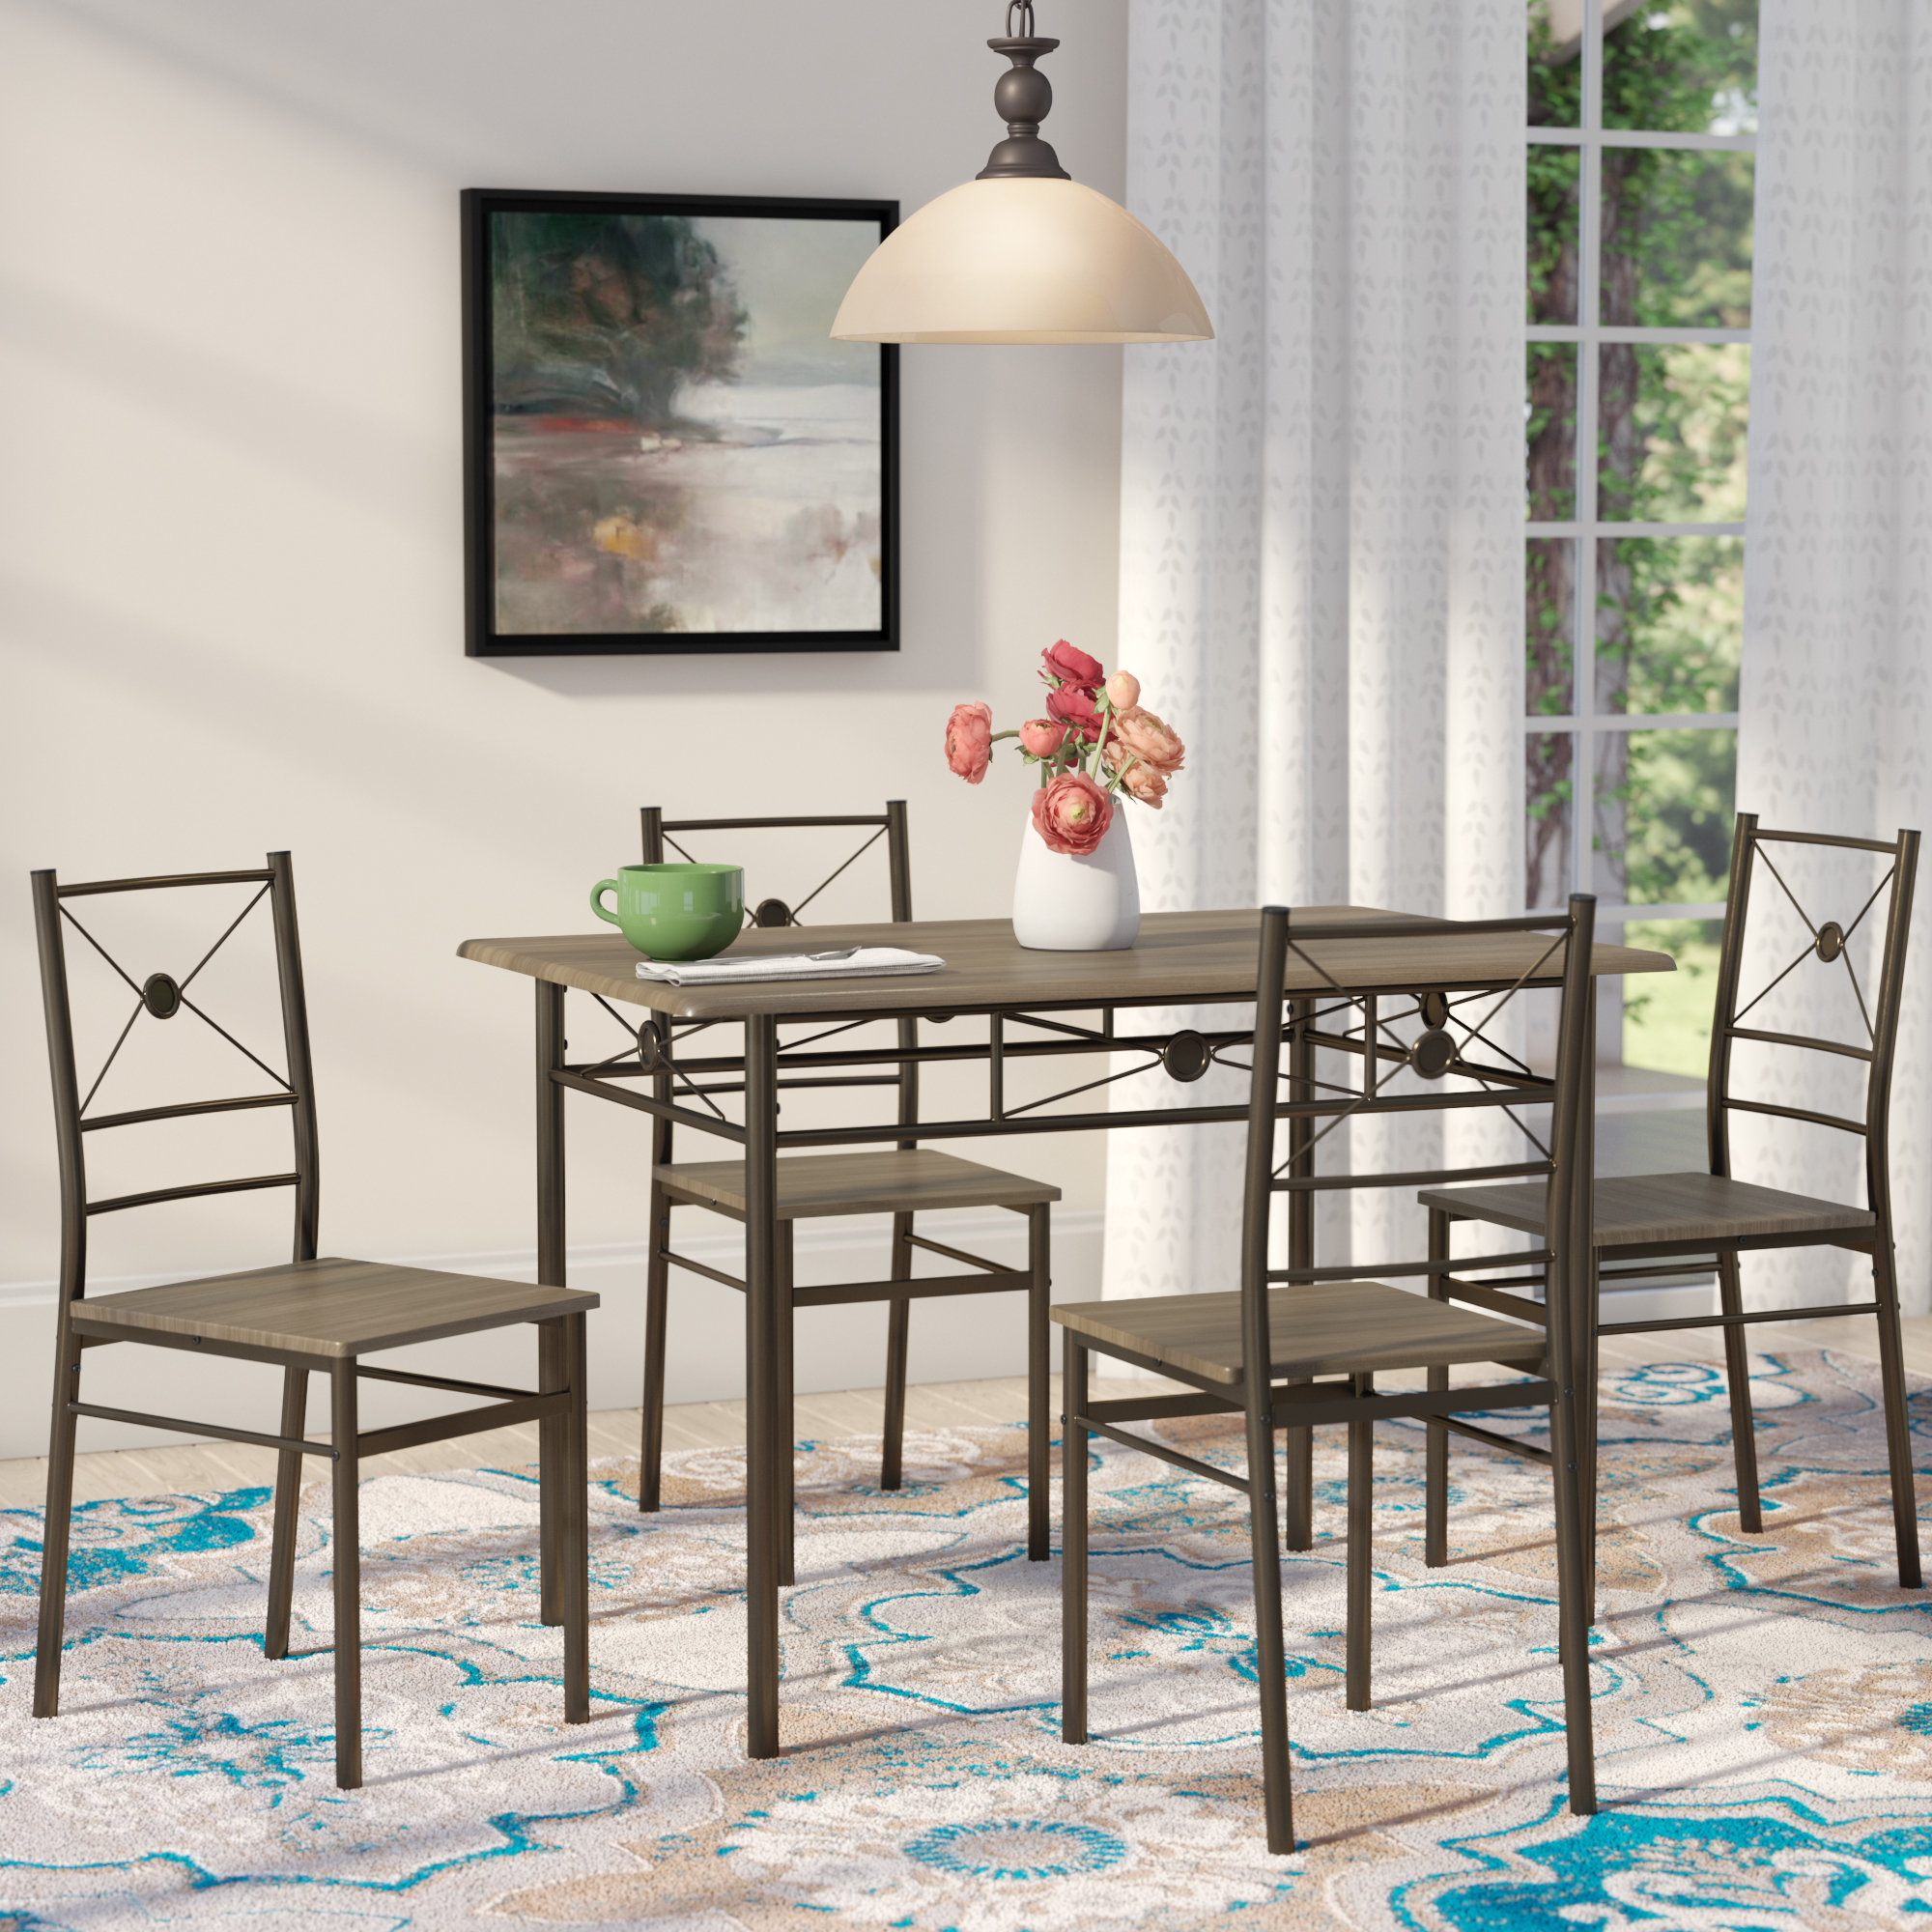 Wayfair Throughout Recent Jarrod 5 Piece Dining Sets (View 5 of 25)